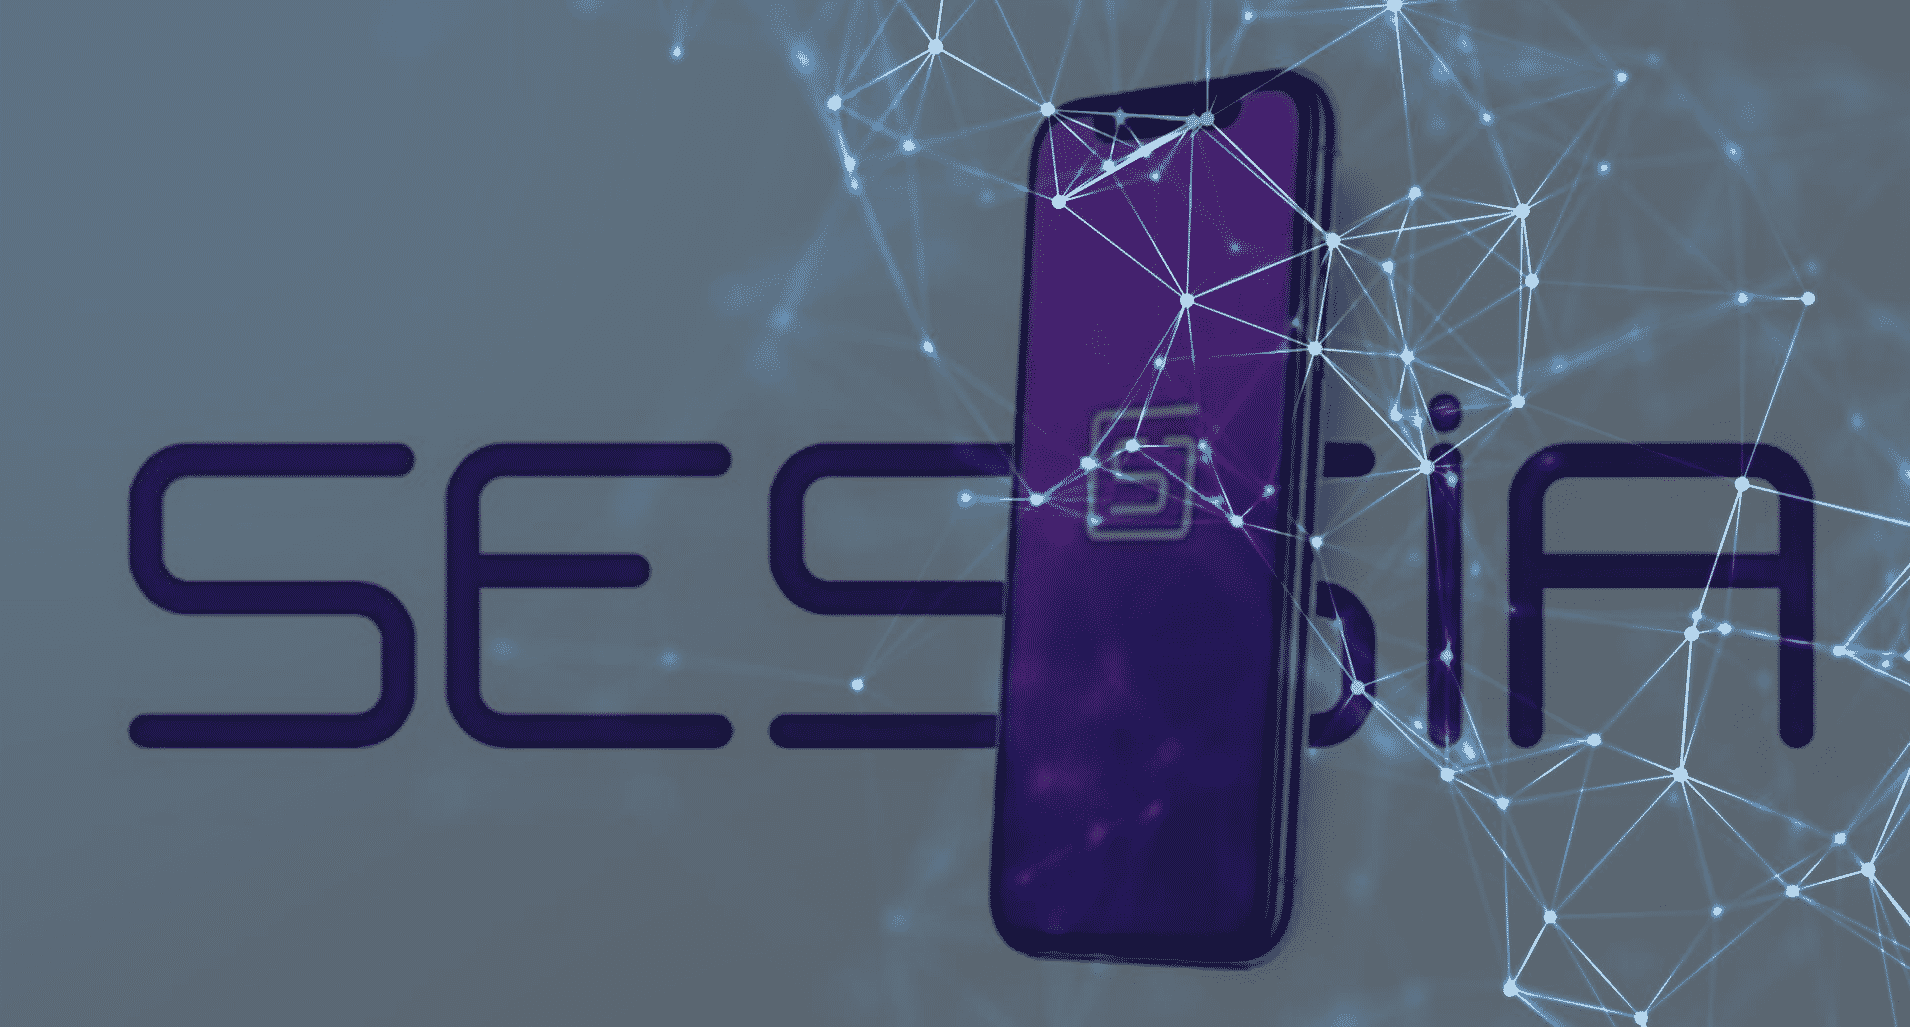 Sessia Connects Businesses and Customers Using A Blockchain Social Network